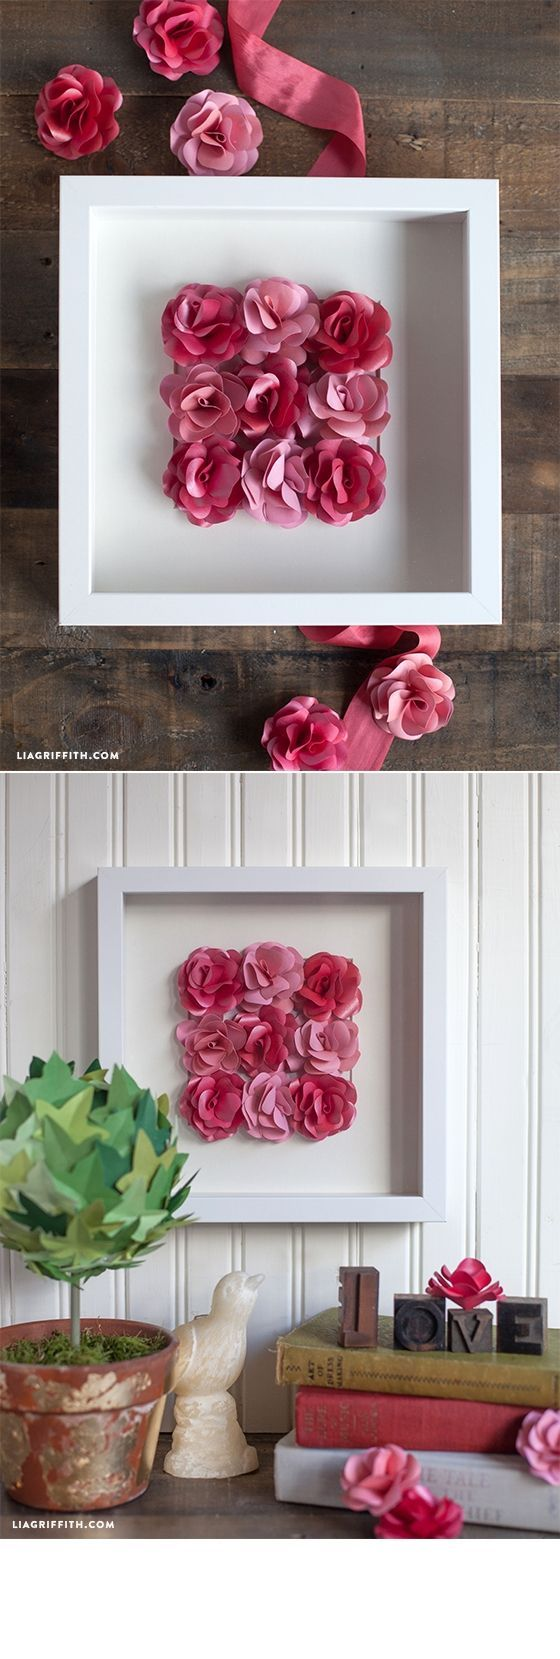 Mini Paper Rose Framed Artwork. For more ideas, inspiration and free printable visit http://www.liagriffith.com